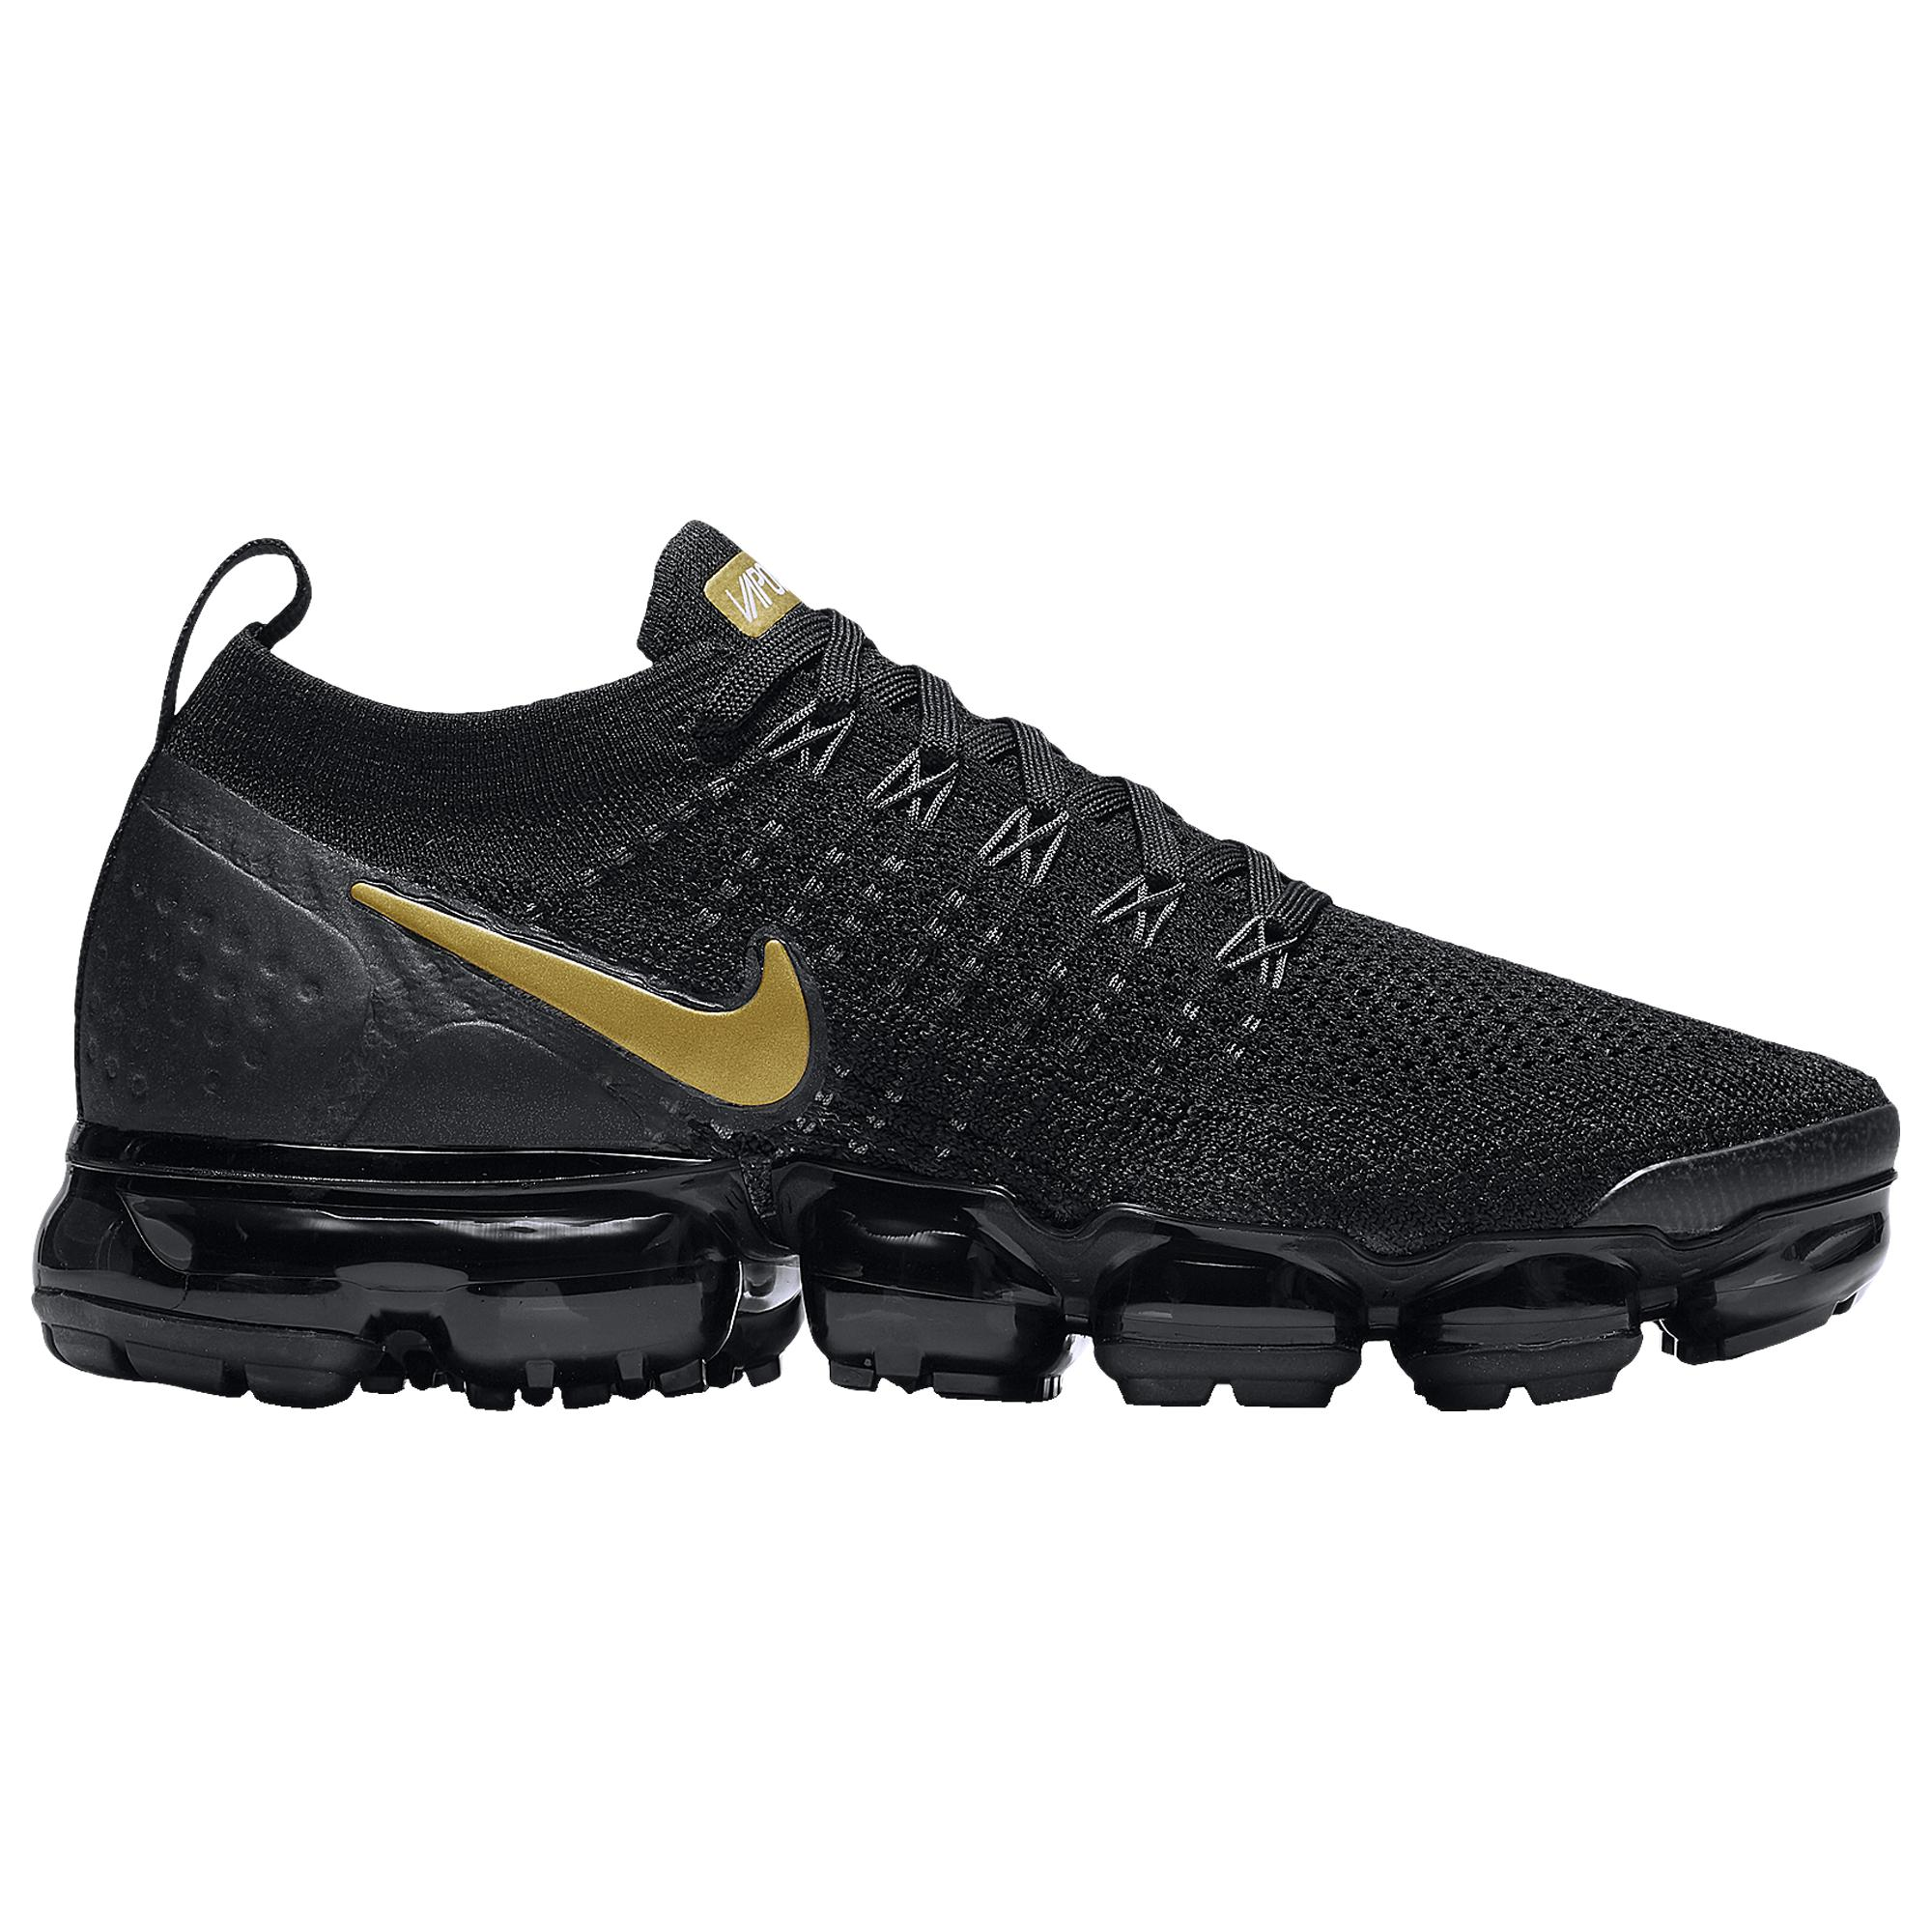 7c72ee83e790 Lyst - Nike Air Vapormax Flyknit 2 in Black - Save 19%